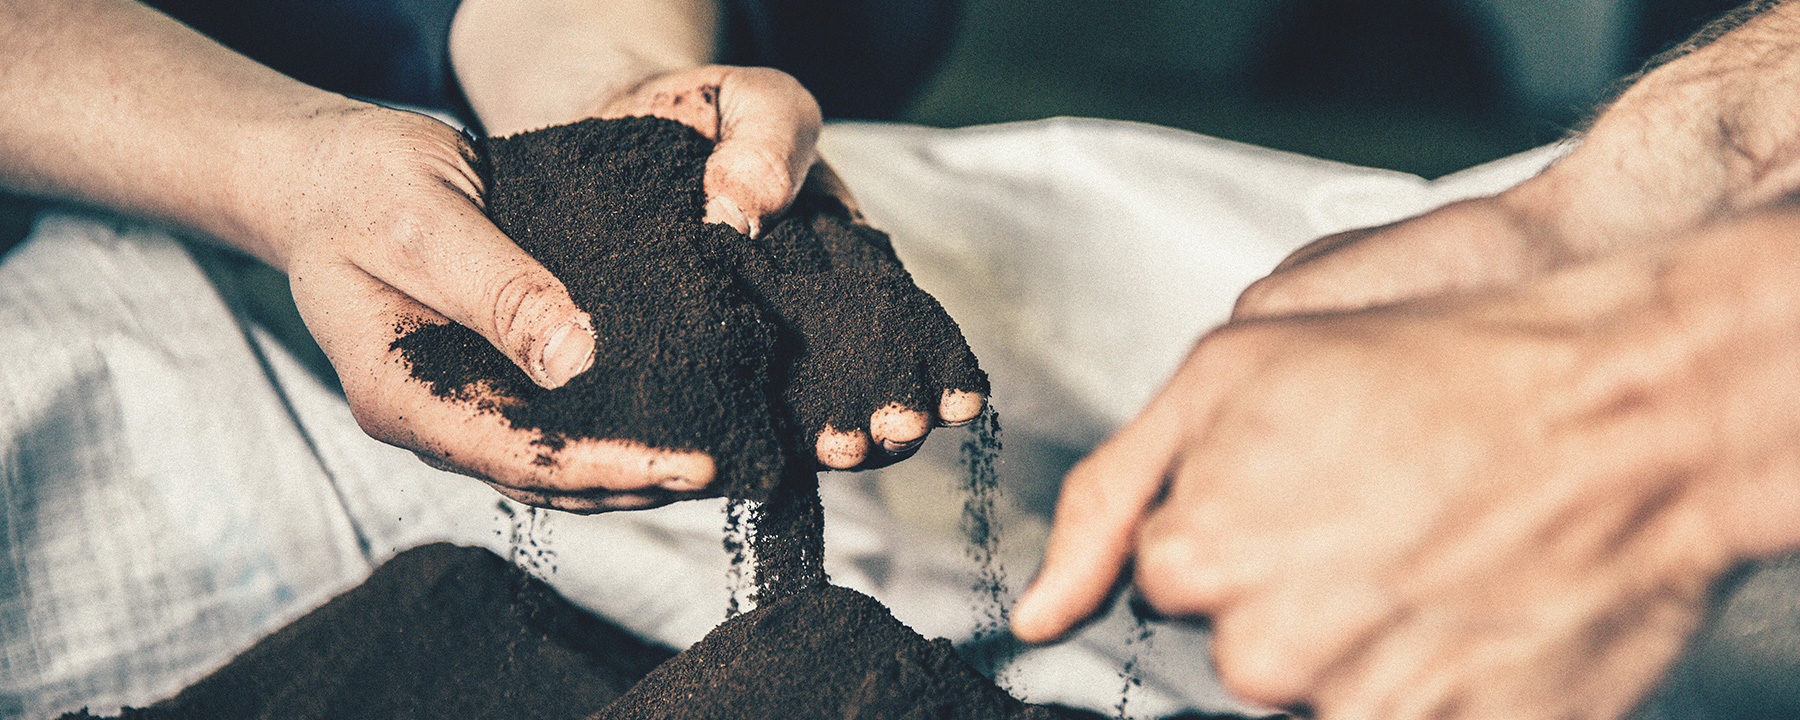 dried recycled coffee grounds